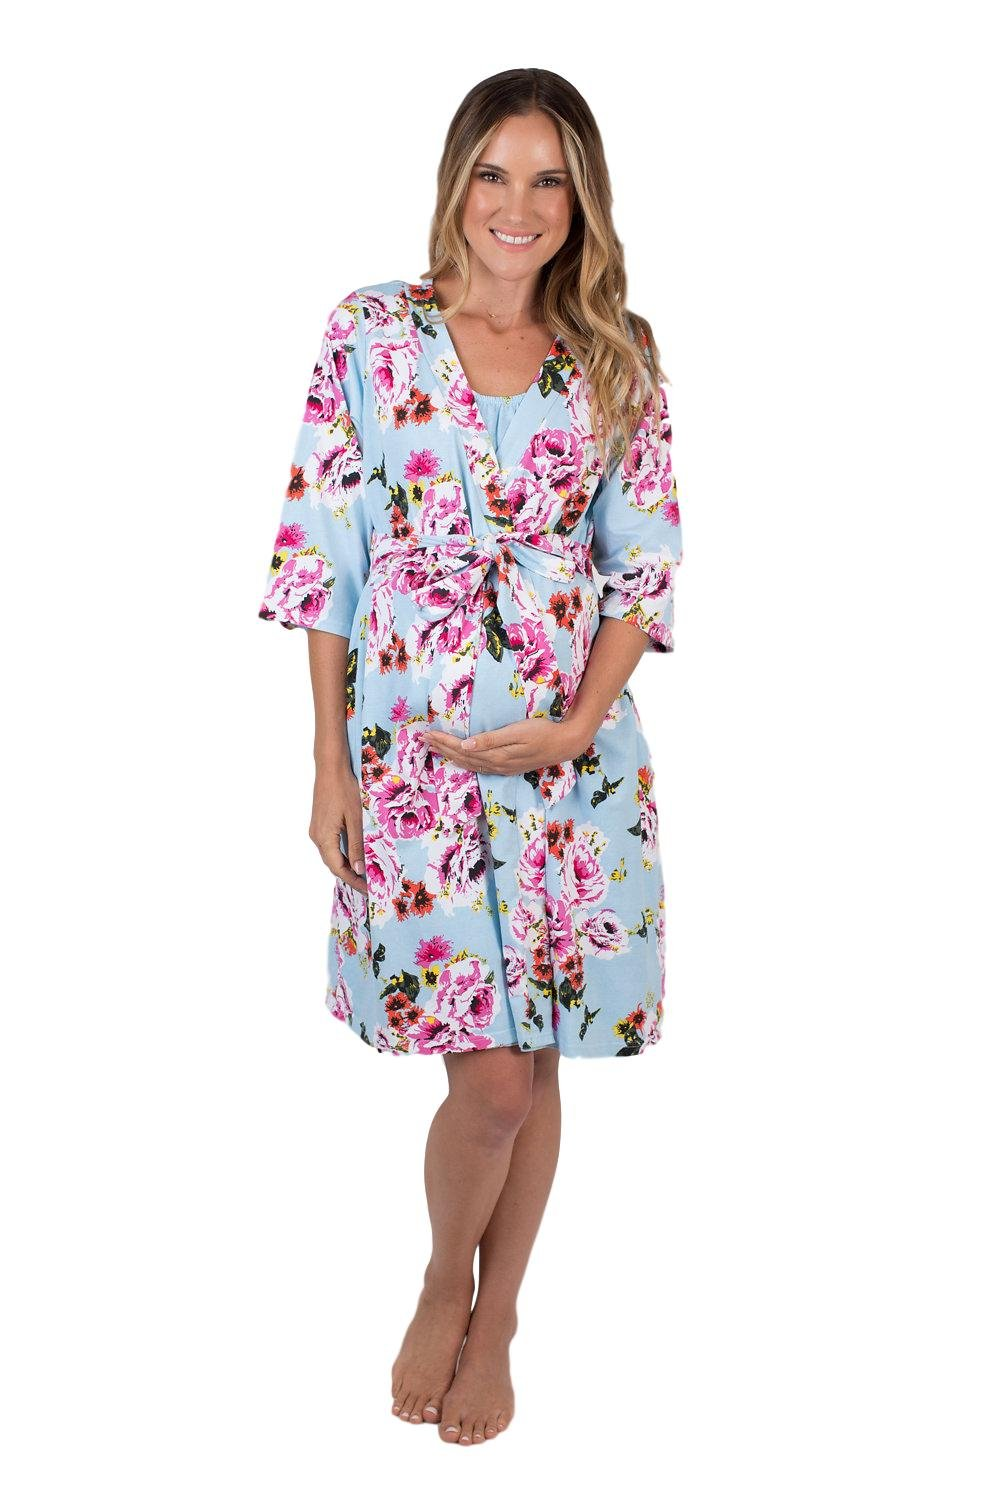 Baby Be Mine Maternity Labor Delivery Nursing Robe Hospital Bag Must Have (S/M pre Pregnancy 4-10, Isla) by Baby Be Mine